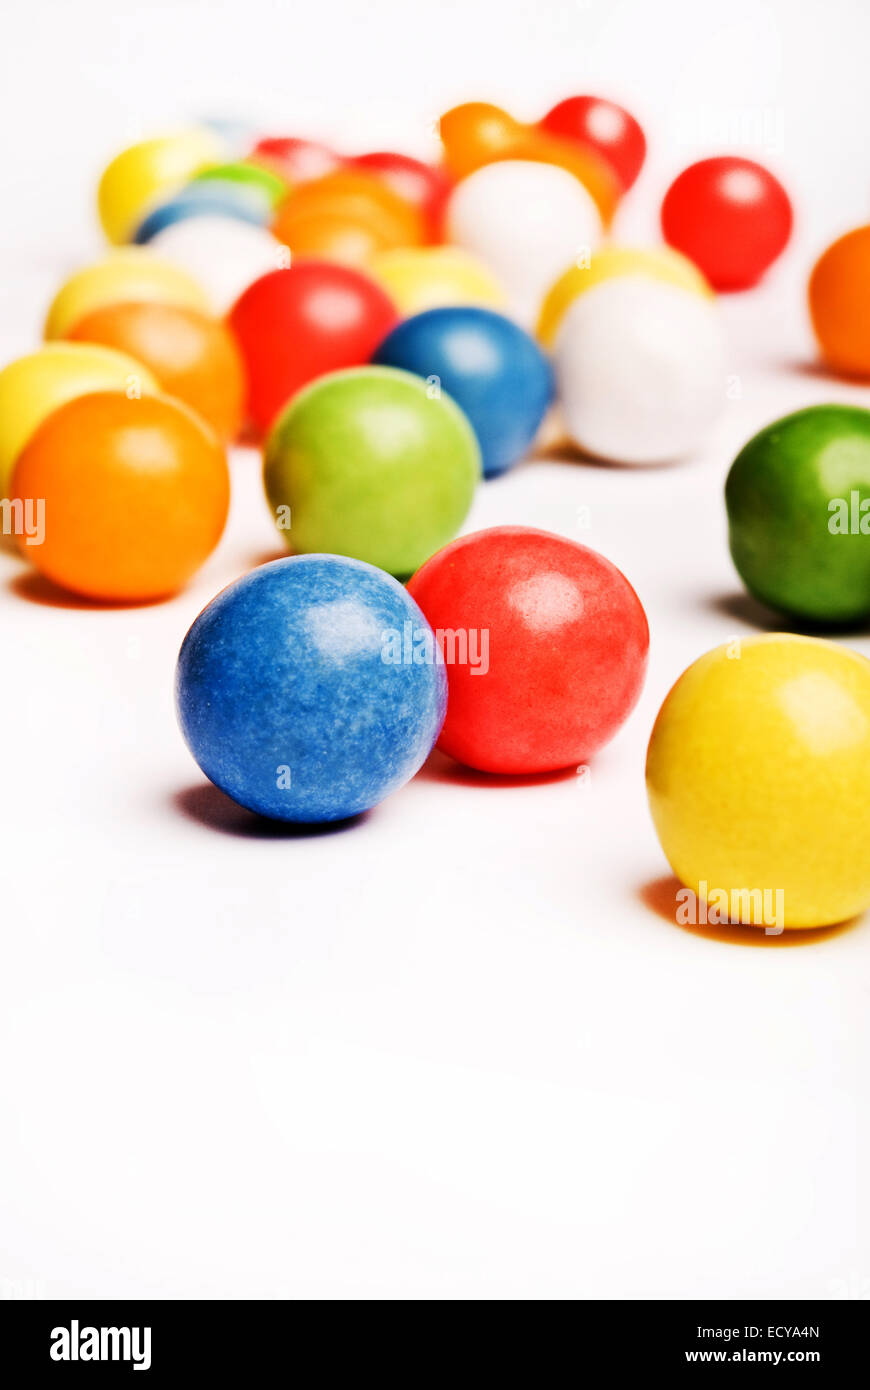 colorful gum-balls on a white background - Stock Image